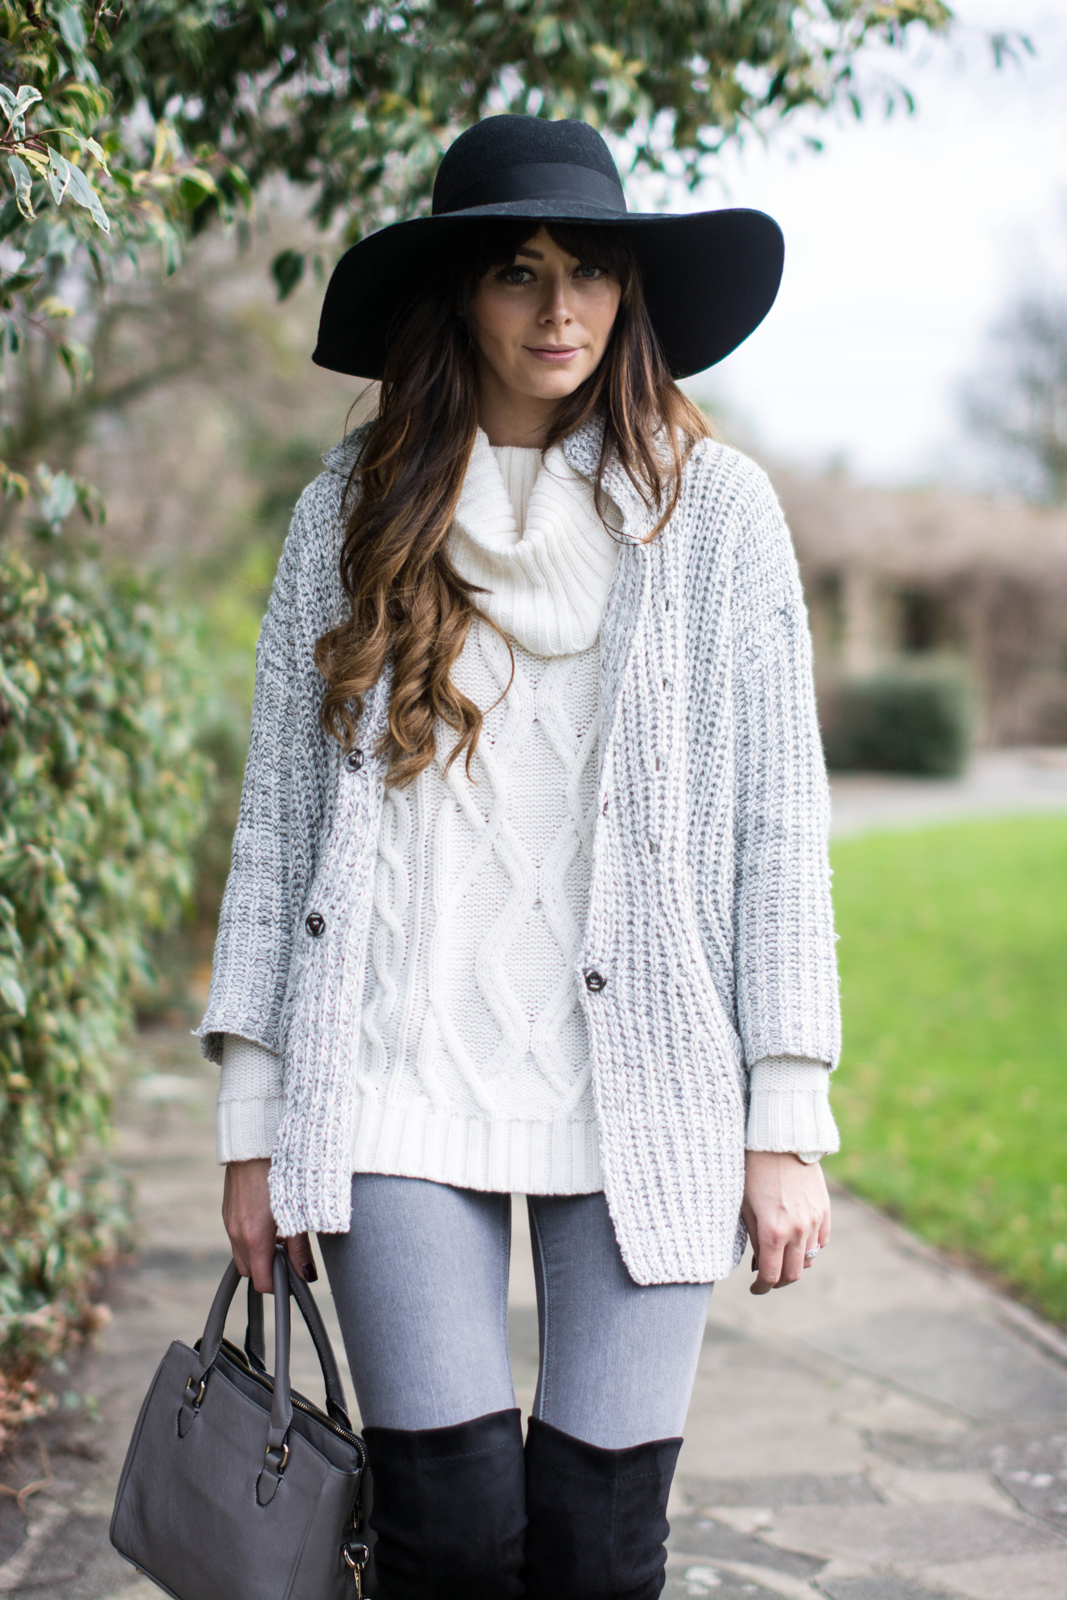 EJSTYLE - Topshop Floppy felt hat, Lookbook store cardigan knit, forever 21 cream cowl neck sweater jumper, OTK boots, Grey skinny jeans, Grey zara mini city bag OOTD winter outfit